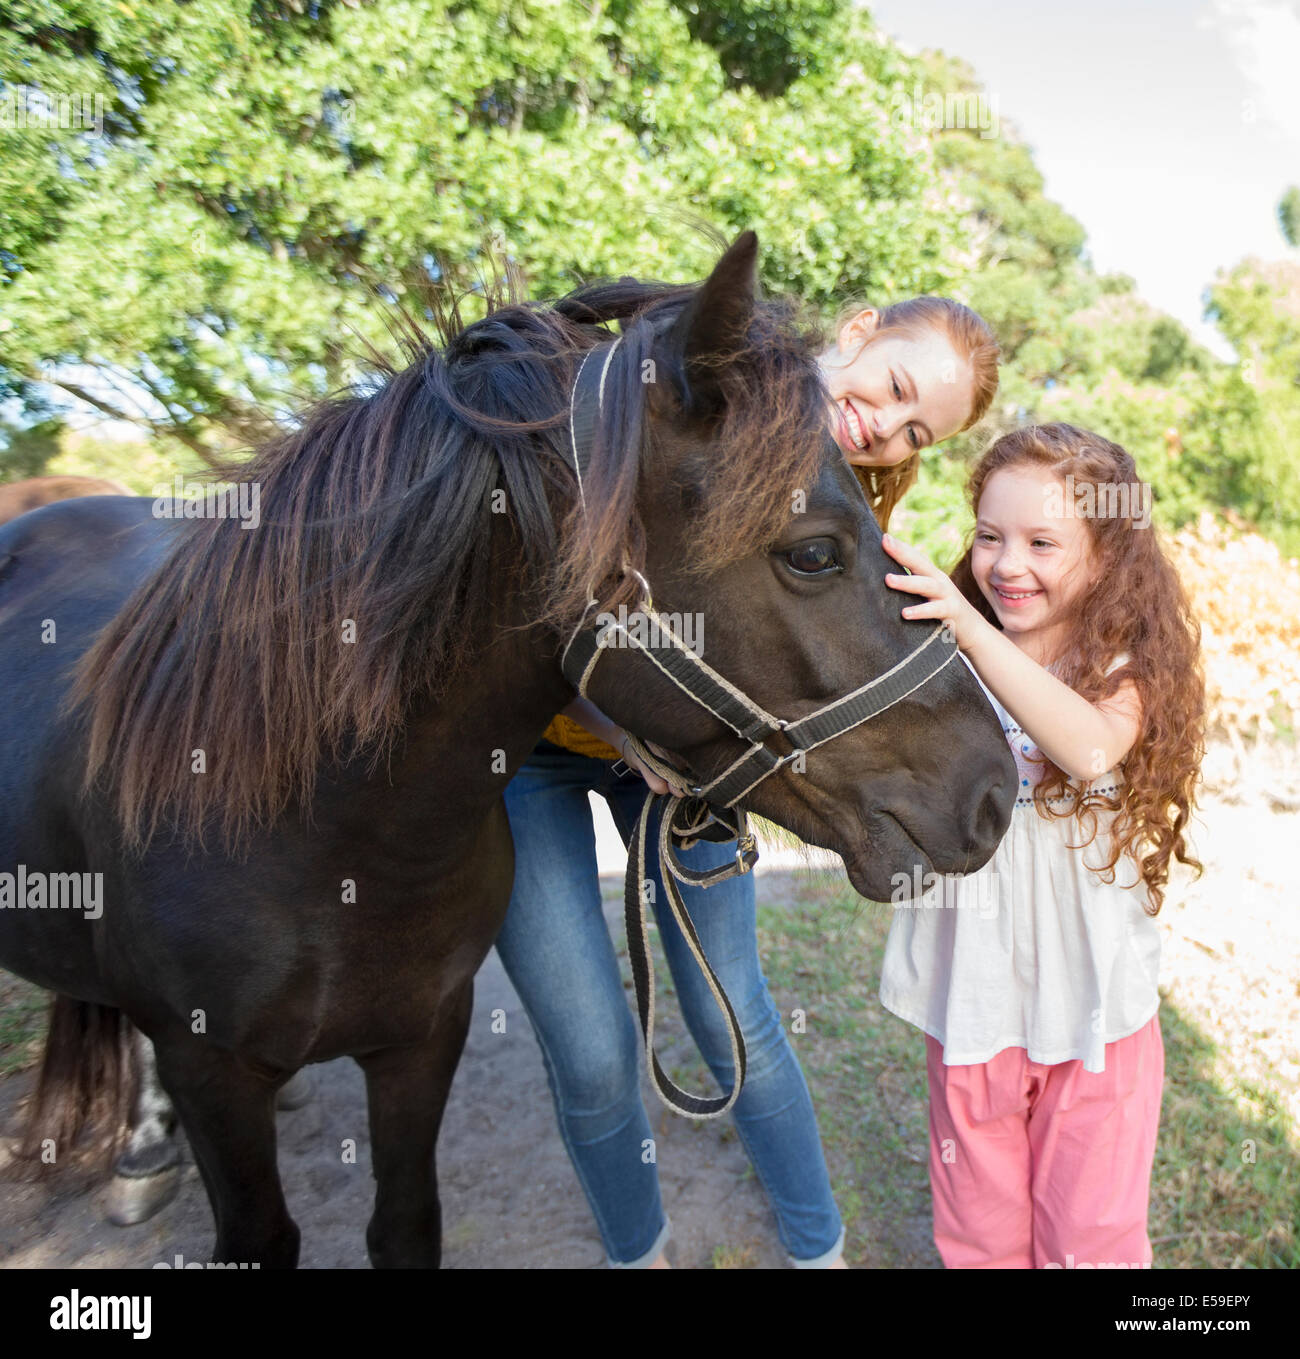 Mère et fille petting horse en plein air Photo Stock